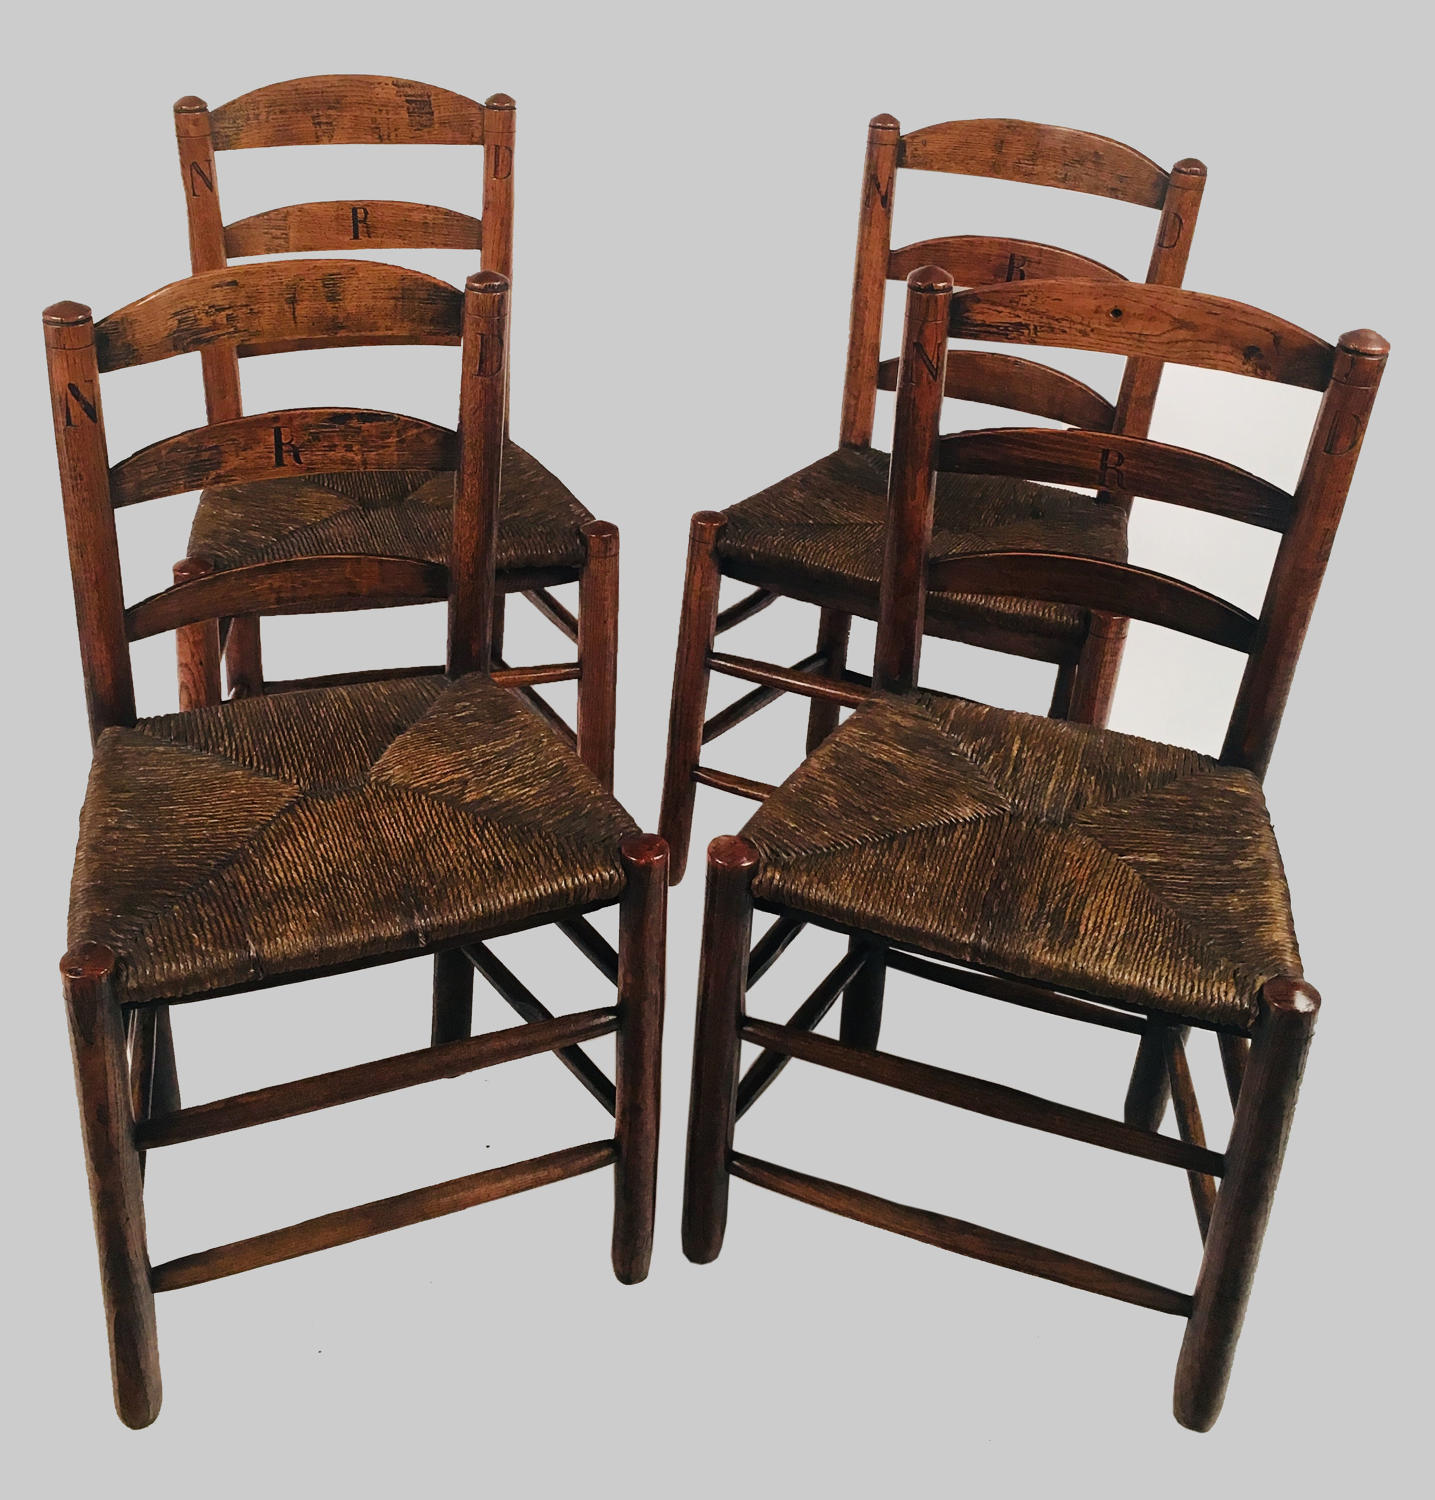 Four, small 19th century rush-seat schoolroom chairs